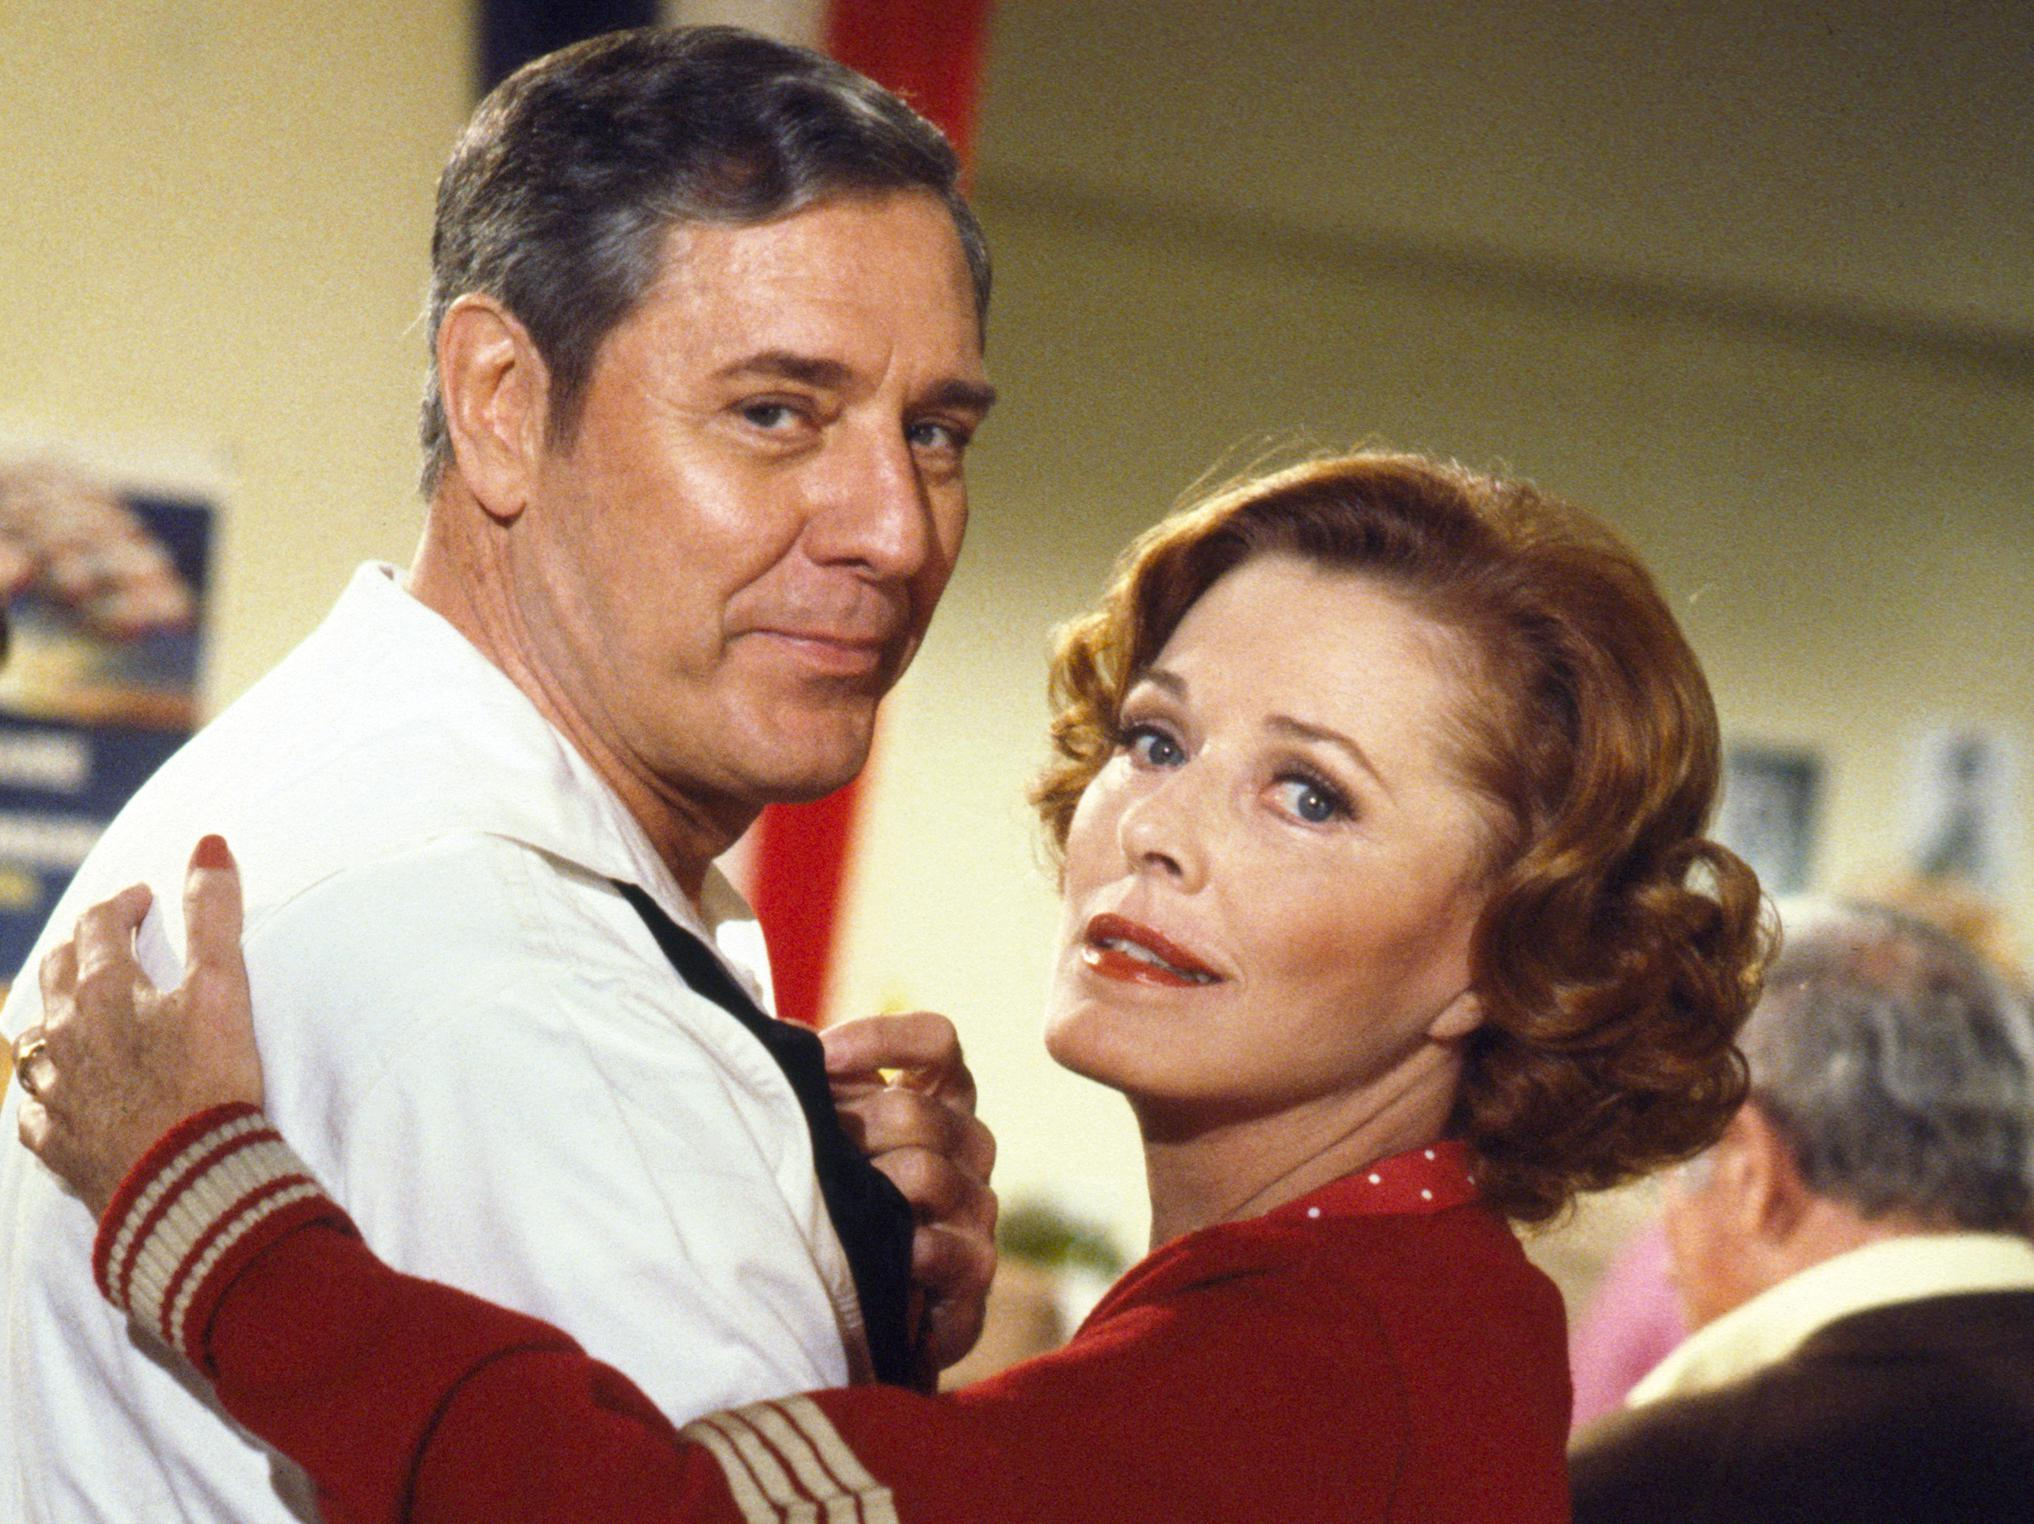 Fantasy Island: Yesterday's Love/Fountain of Youth